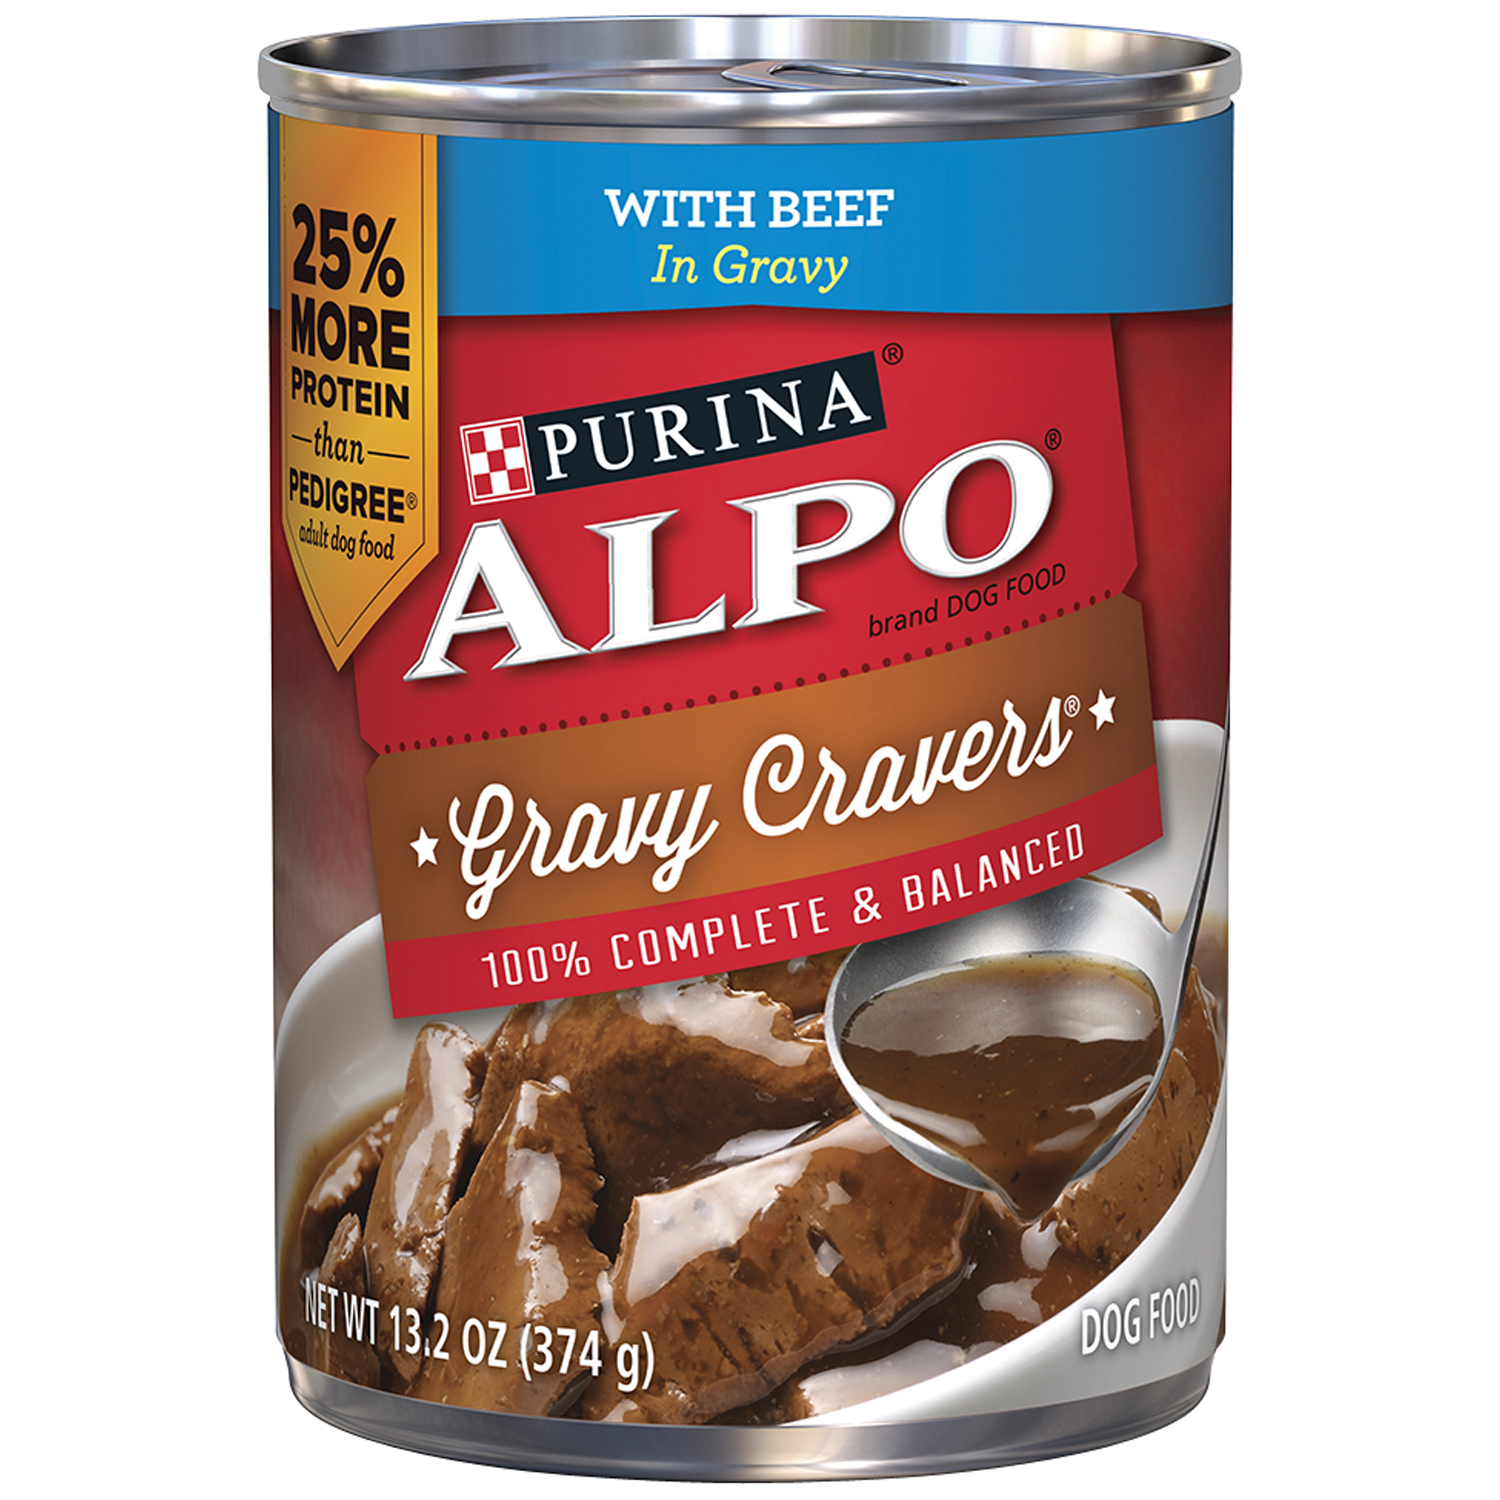 Purina ALPO Gravy Cravers with Beef Wet Dog Food, 13.2 Oz.